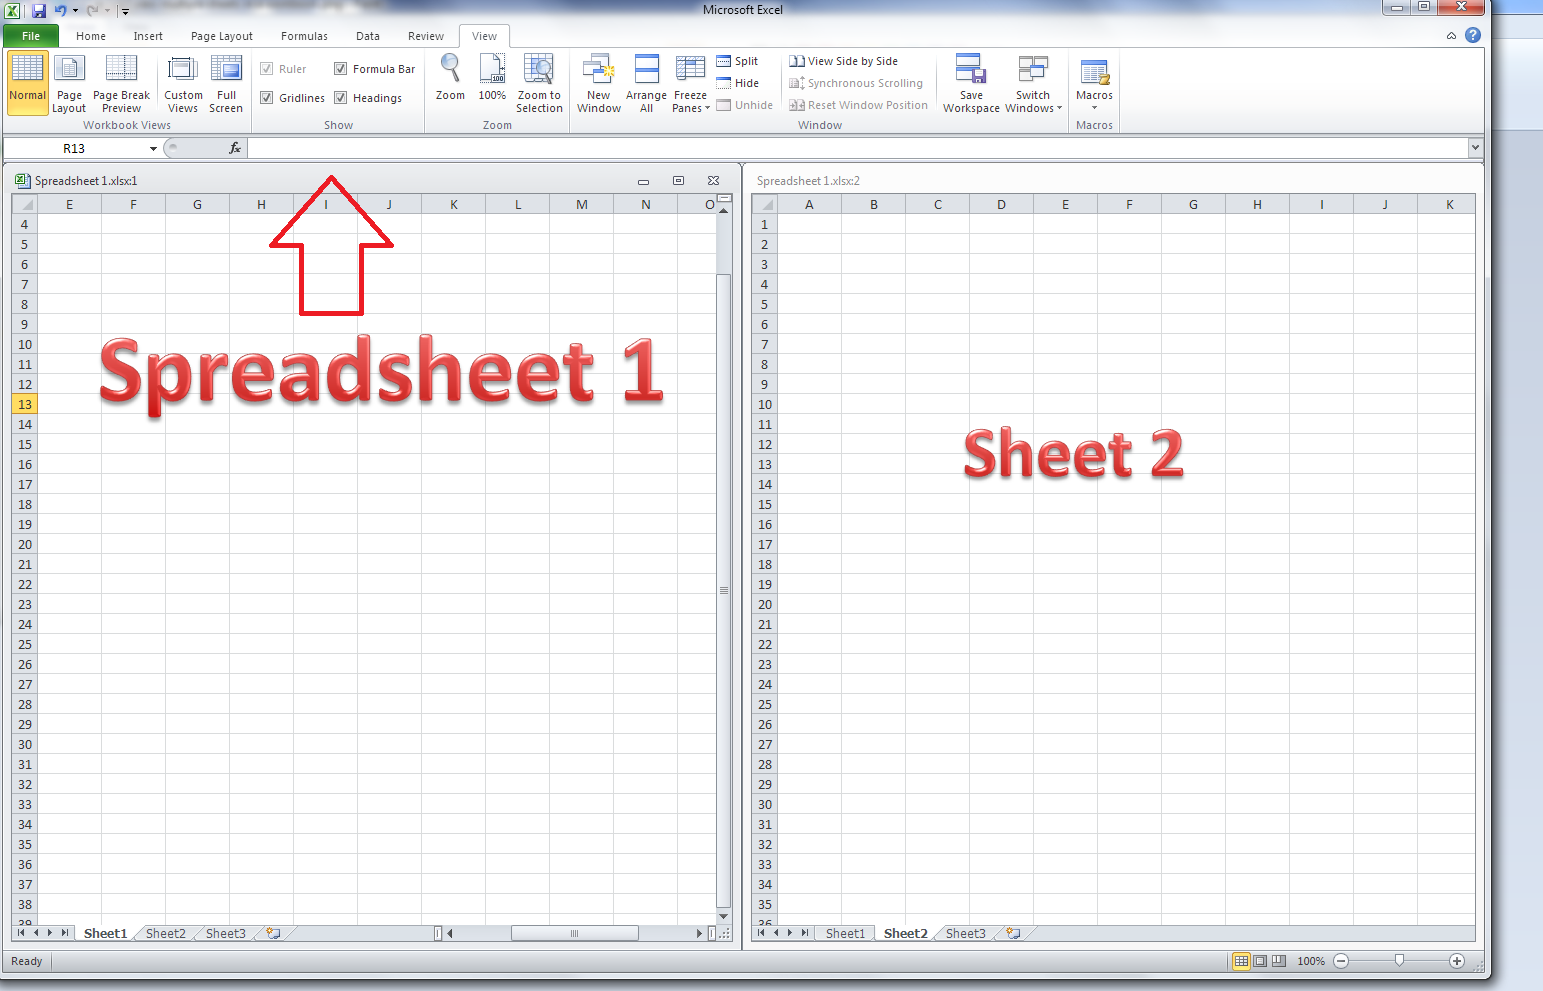 worksheet Excel Compare Two Worksheets how do i view two sheets of an excel workbook at the same time return to single sheet view